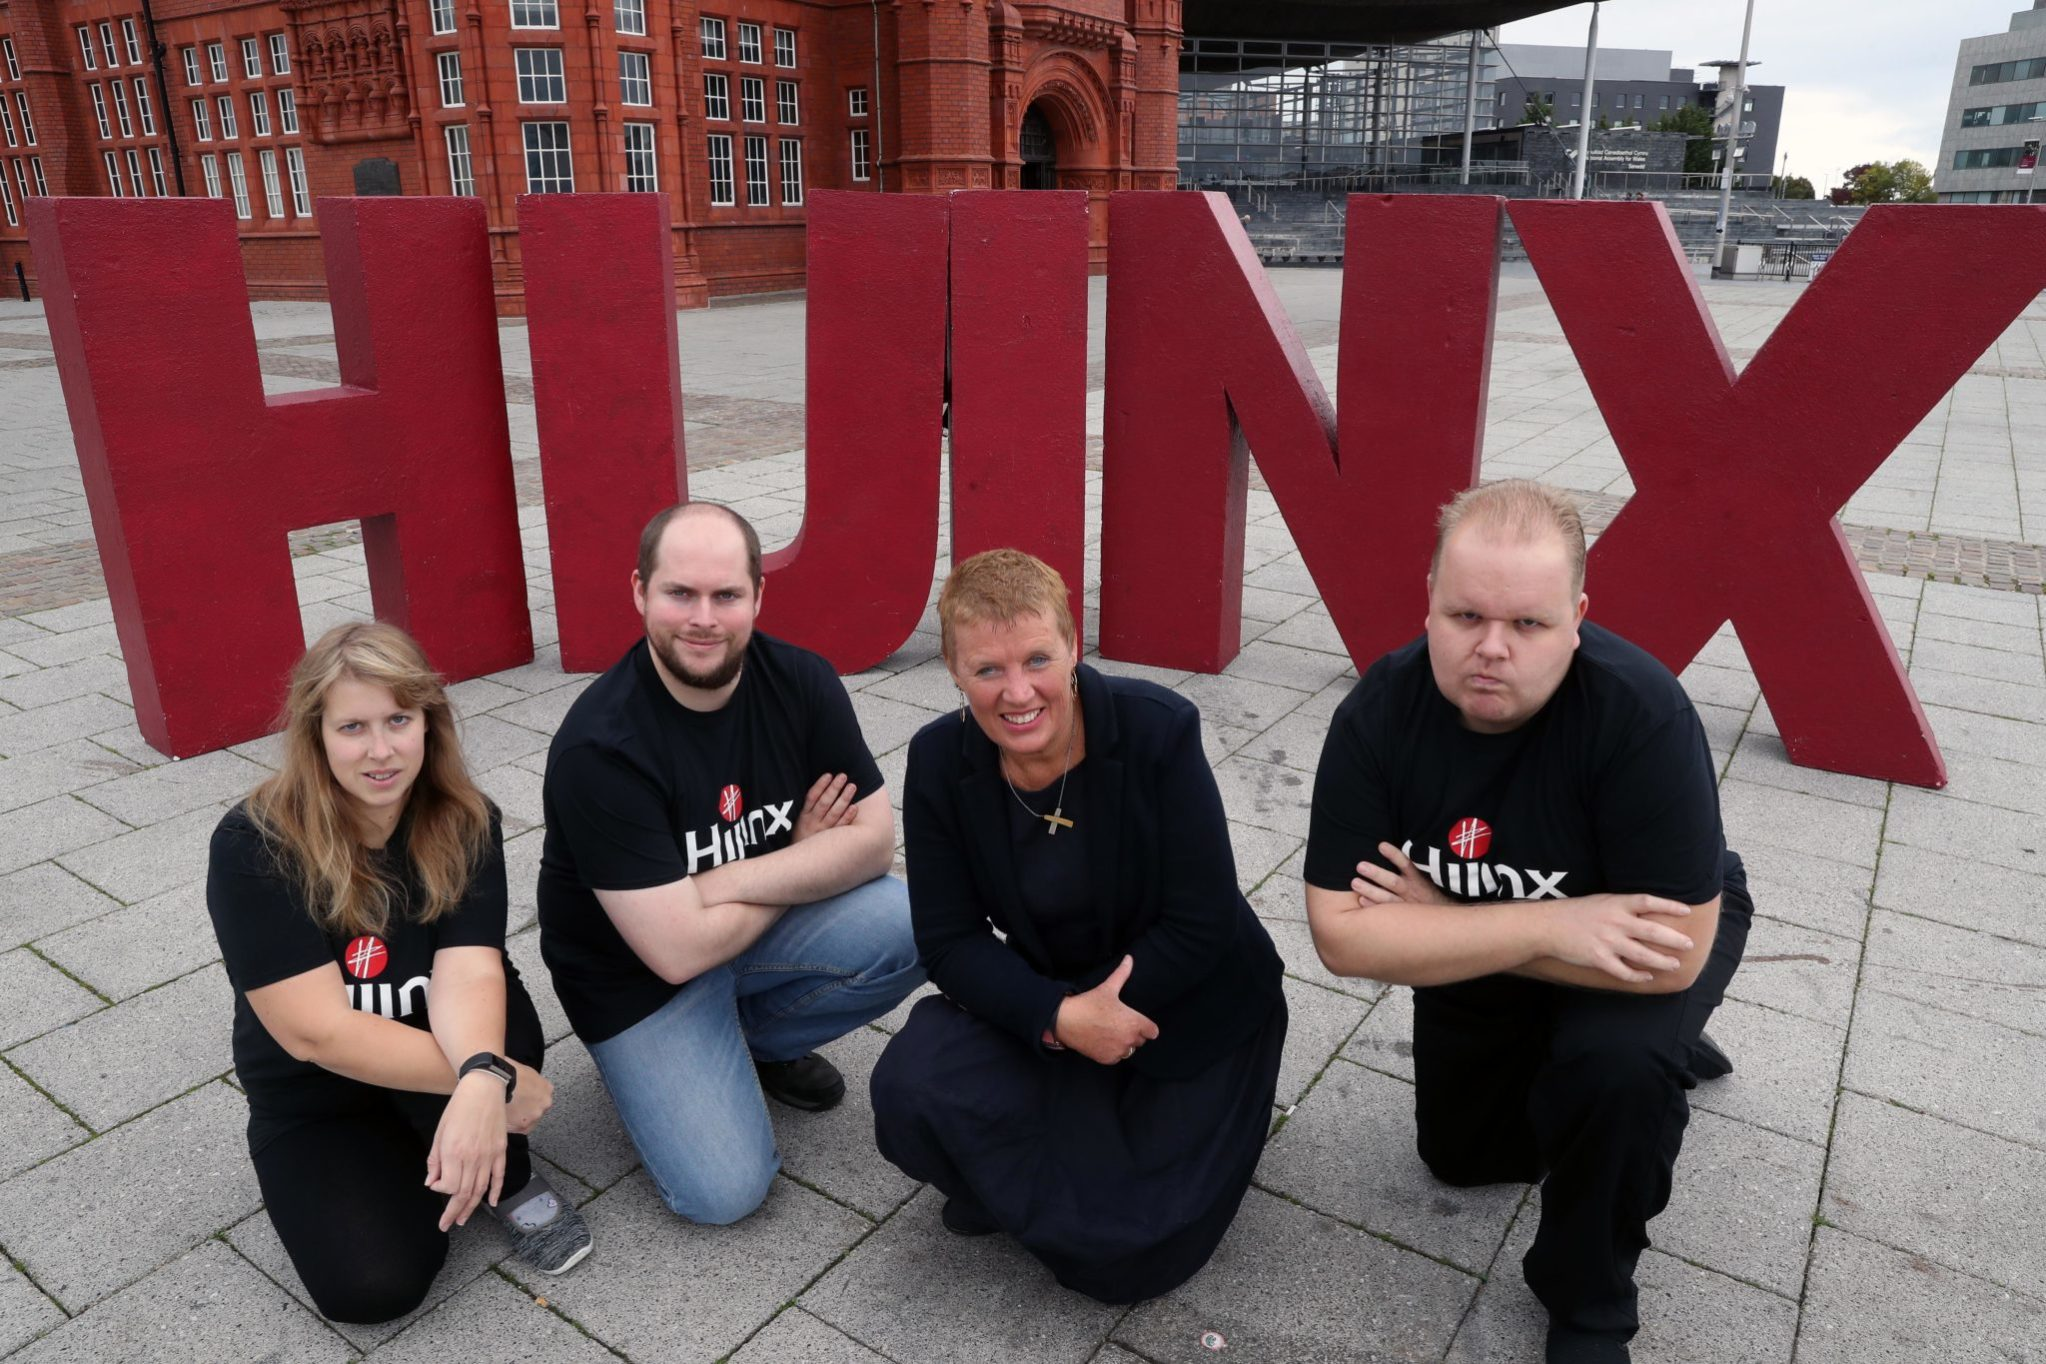 Actors from Hijinx Theatre kneeling infront of large red letters that spell out Hijinx